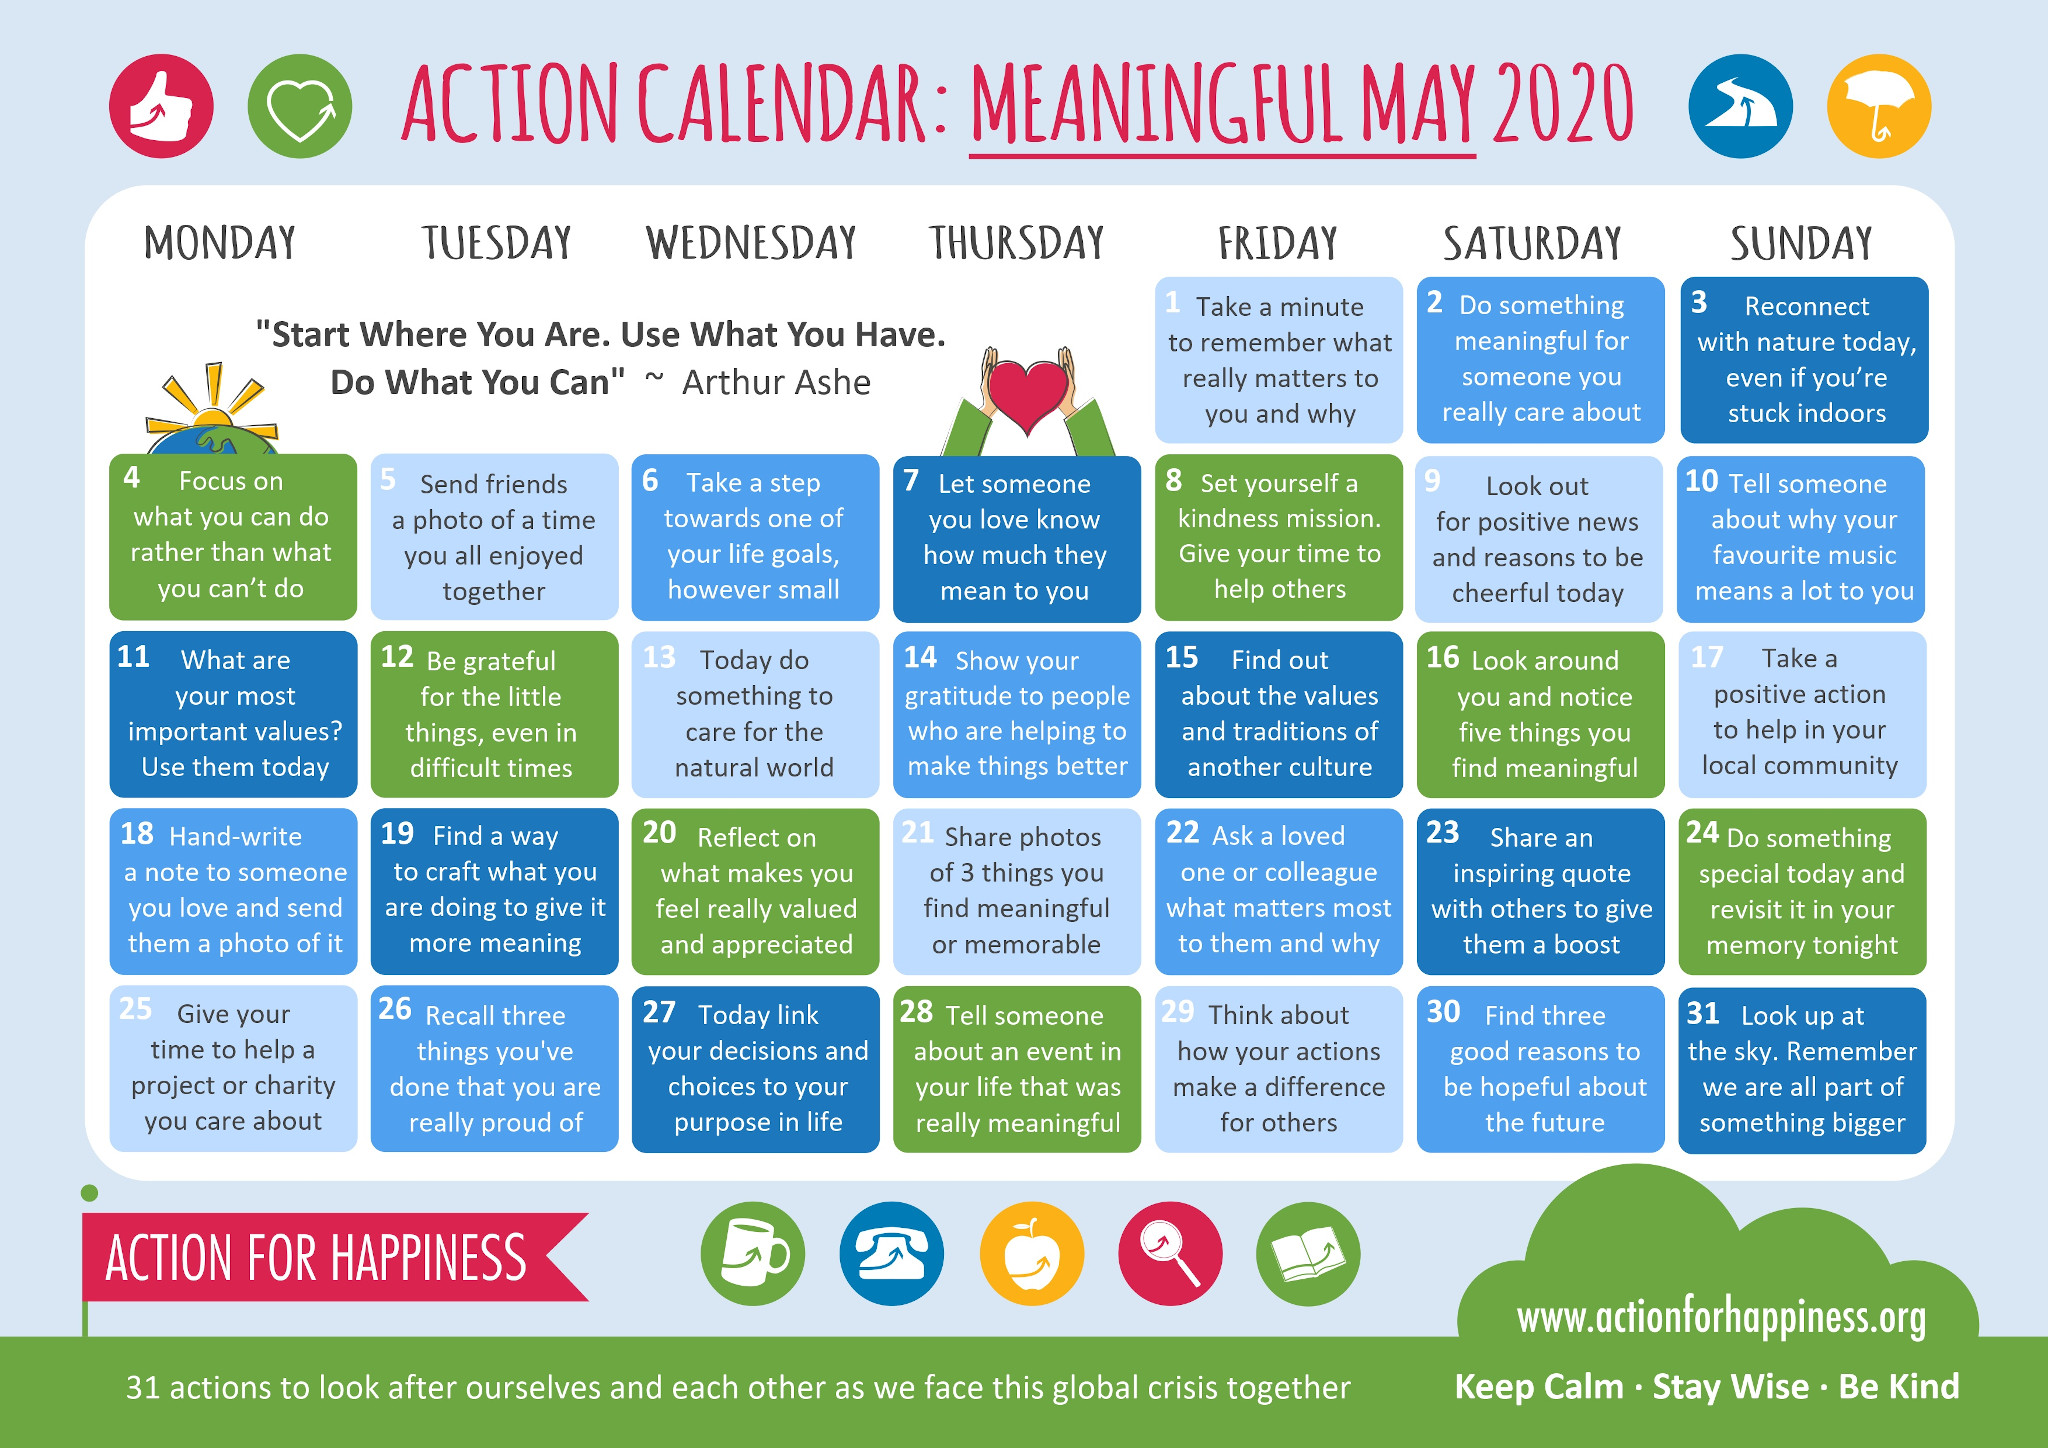 Action Calendar Meaningful May